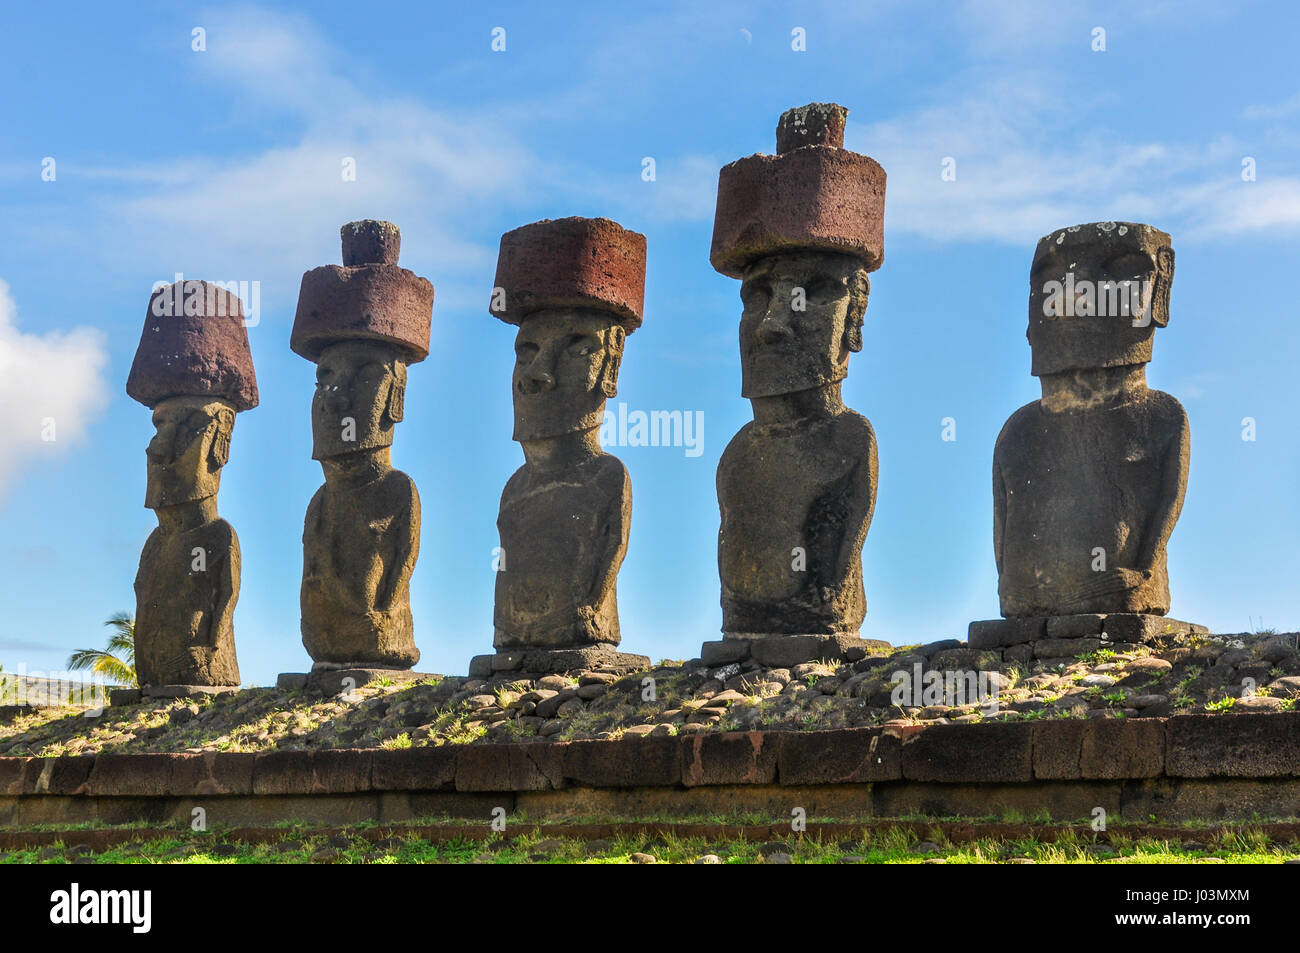 Moai statues standing on Anakena Beach in Easter Island, Chile - Stock Image